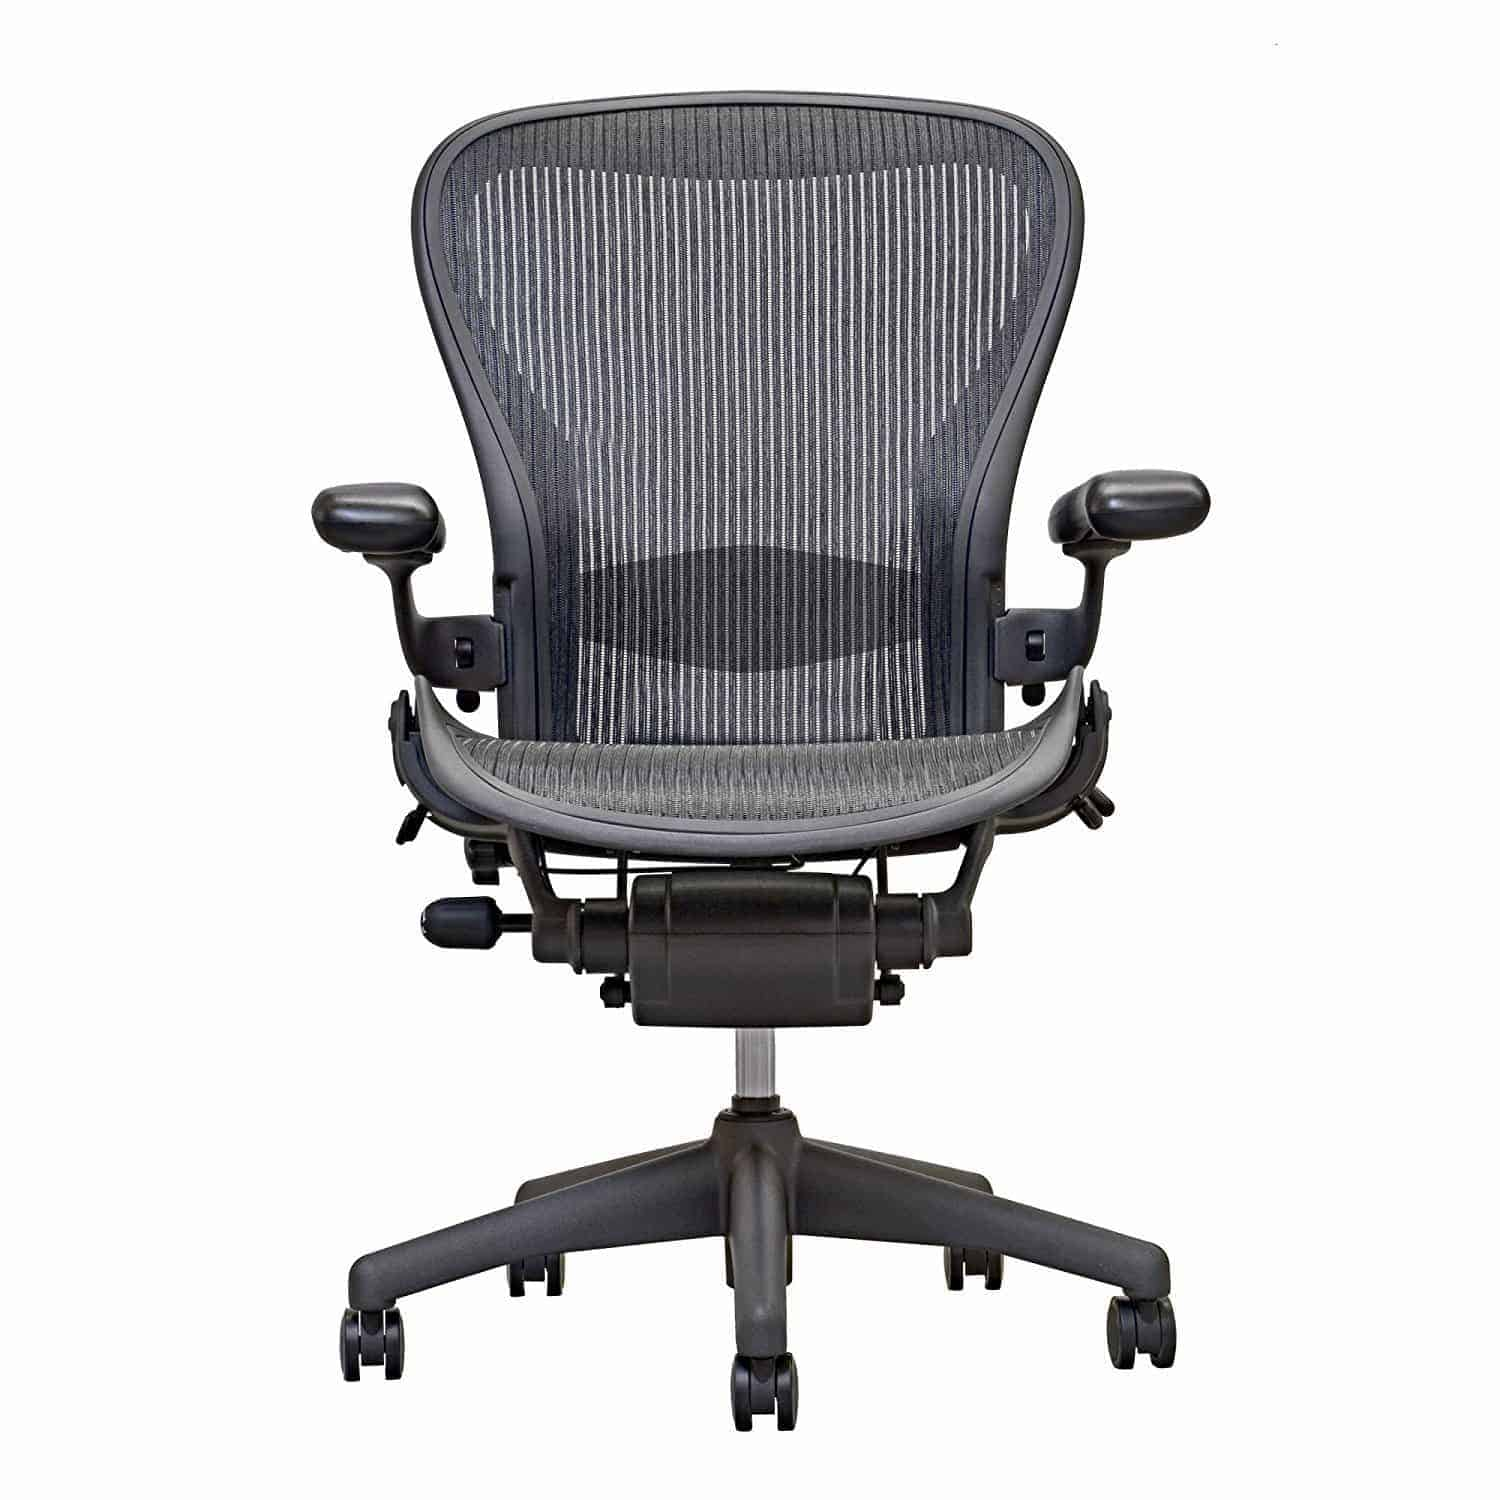 Game Chair With Speakers Best Gaming Chairs 2019 Don T Buy Before Reading This By Experts